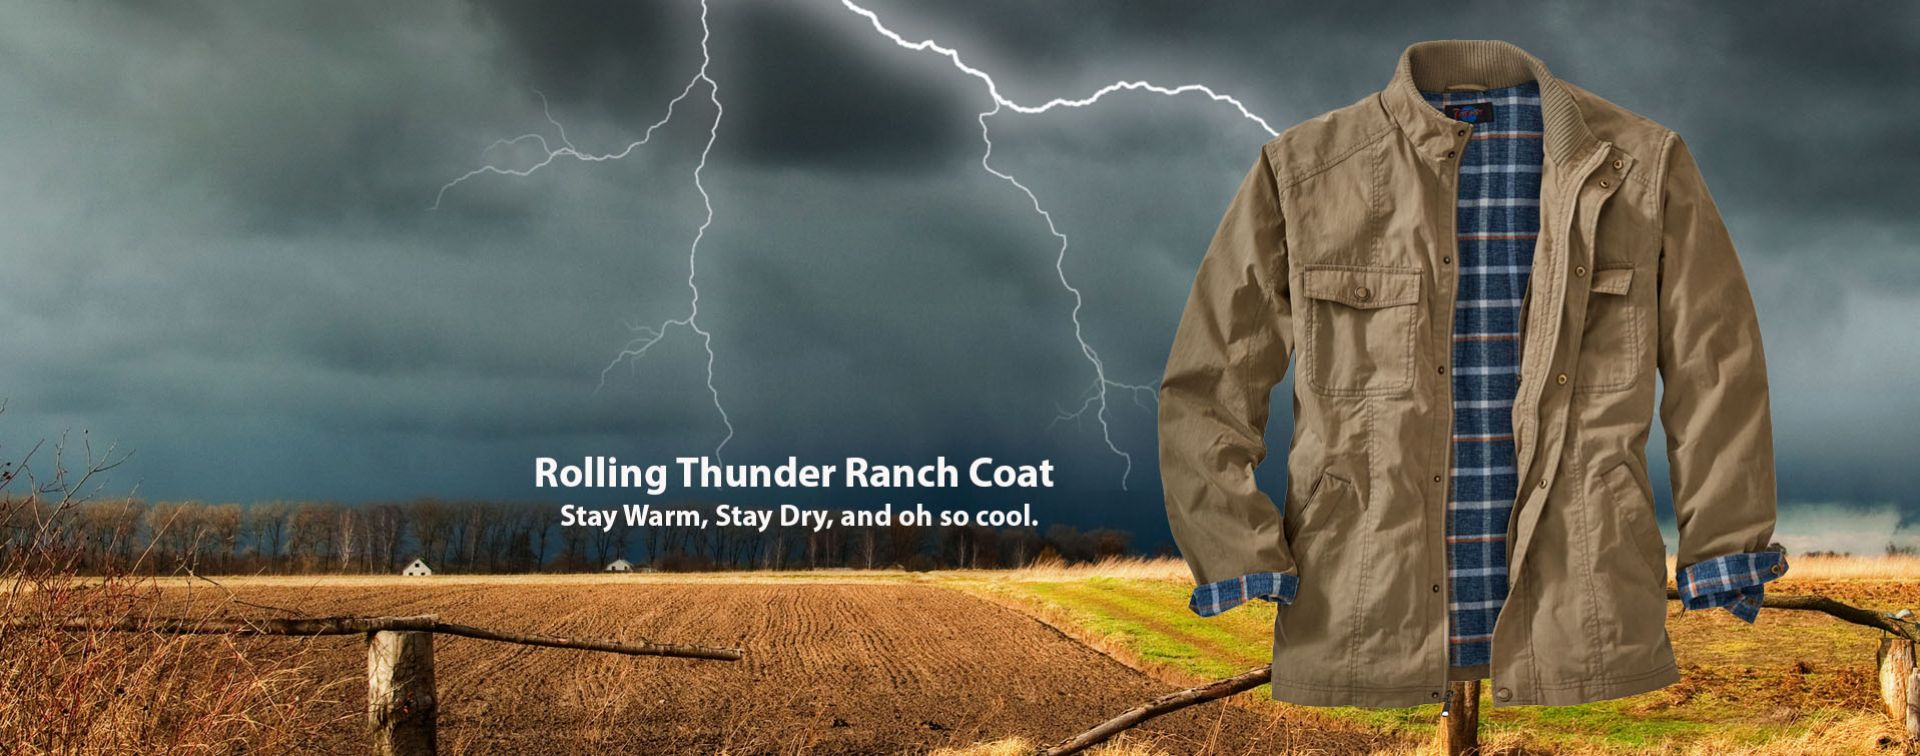 Thunder Ranch Coat